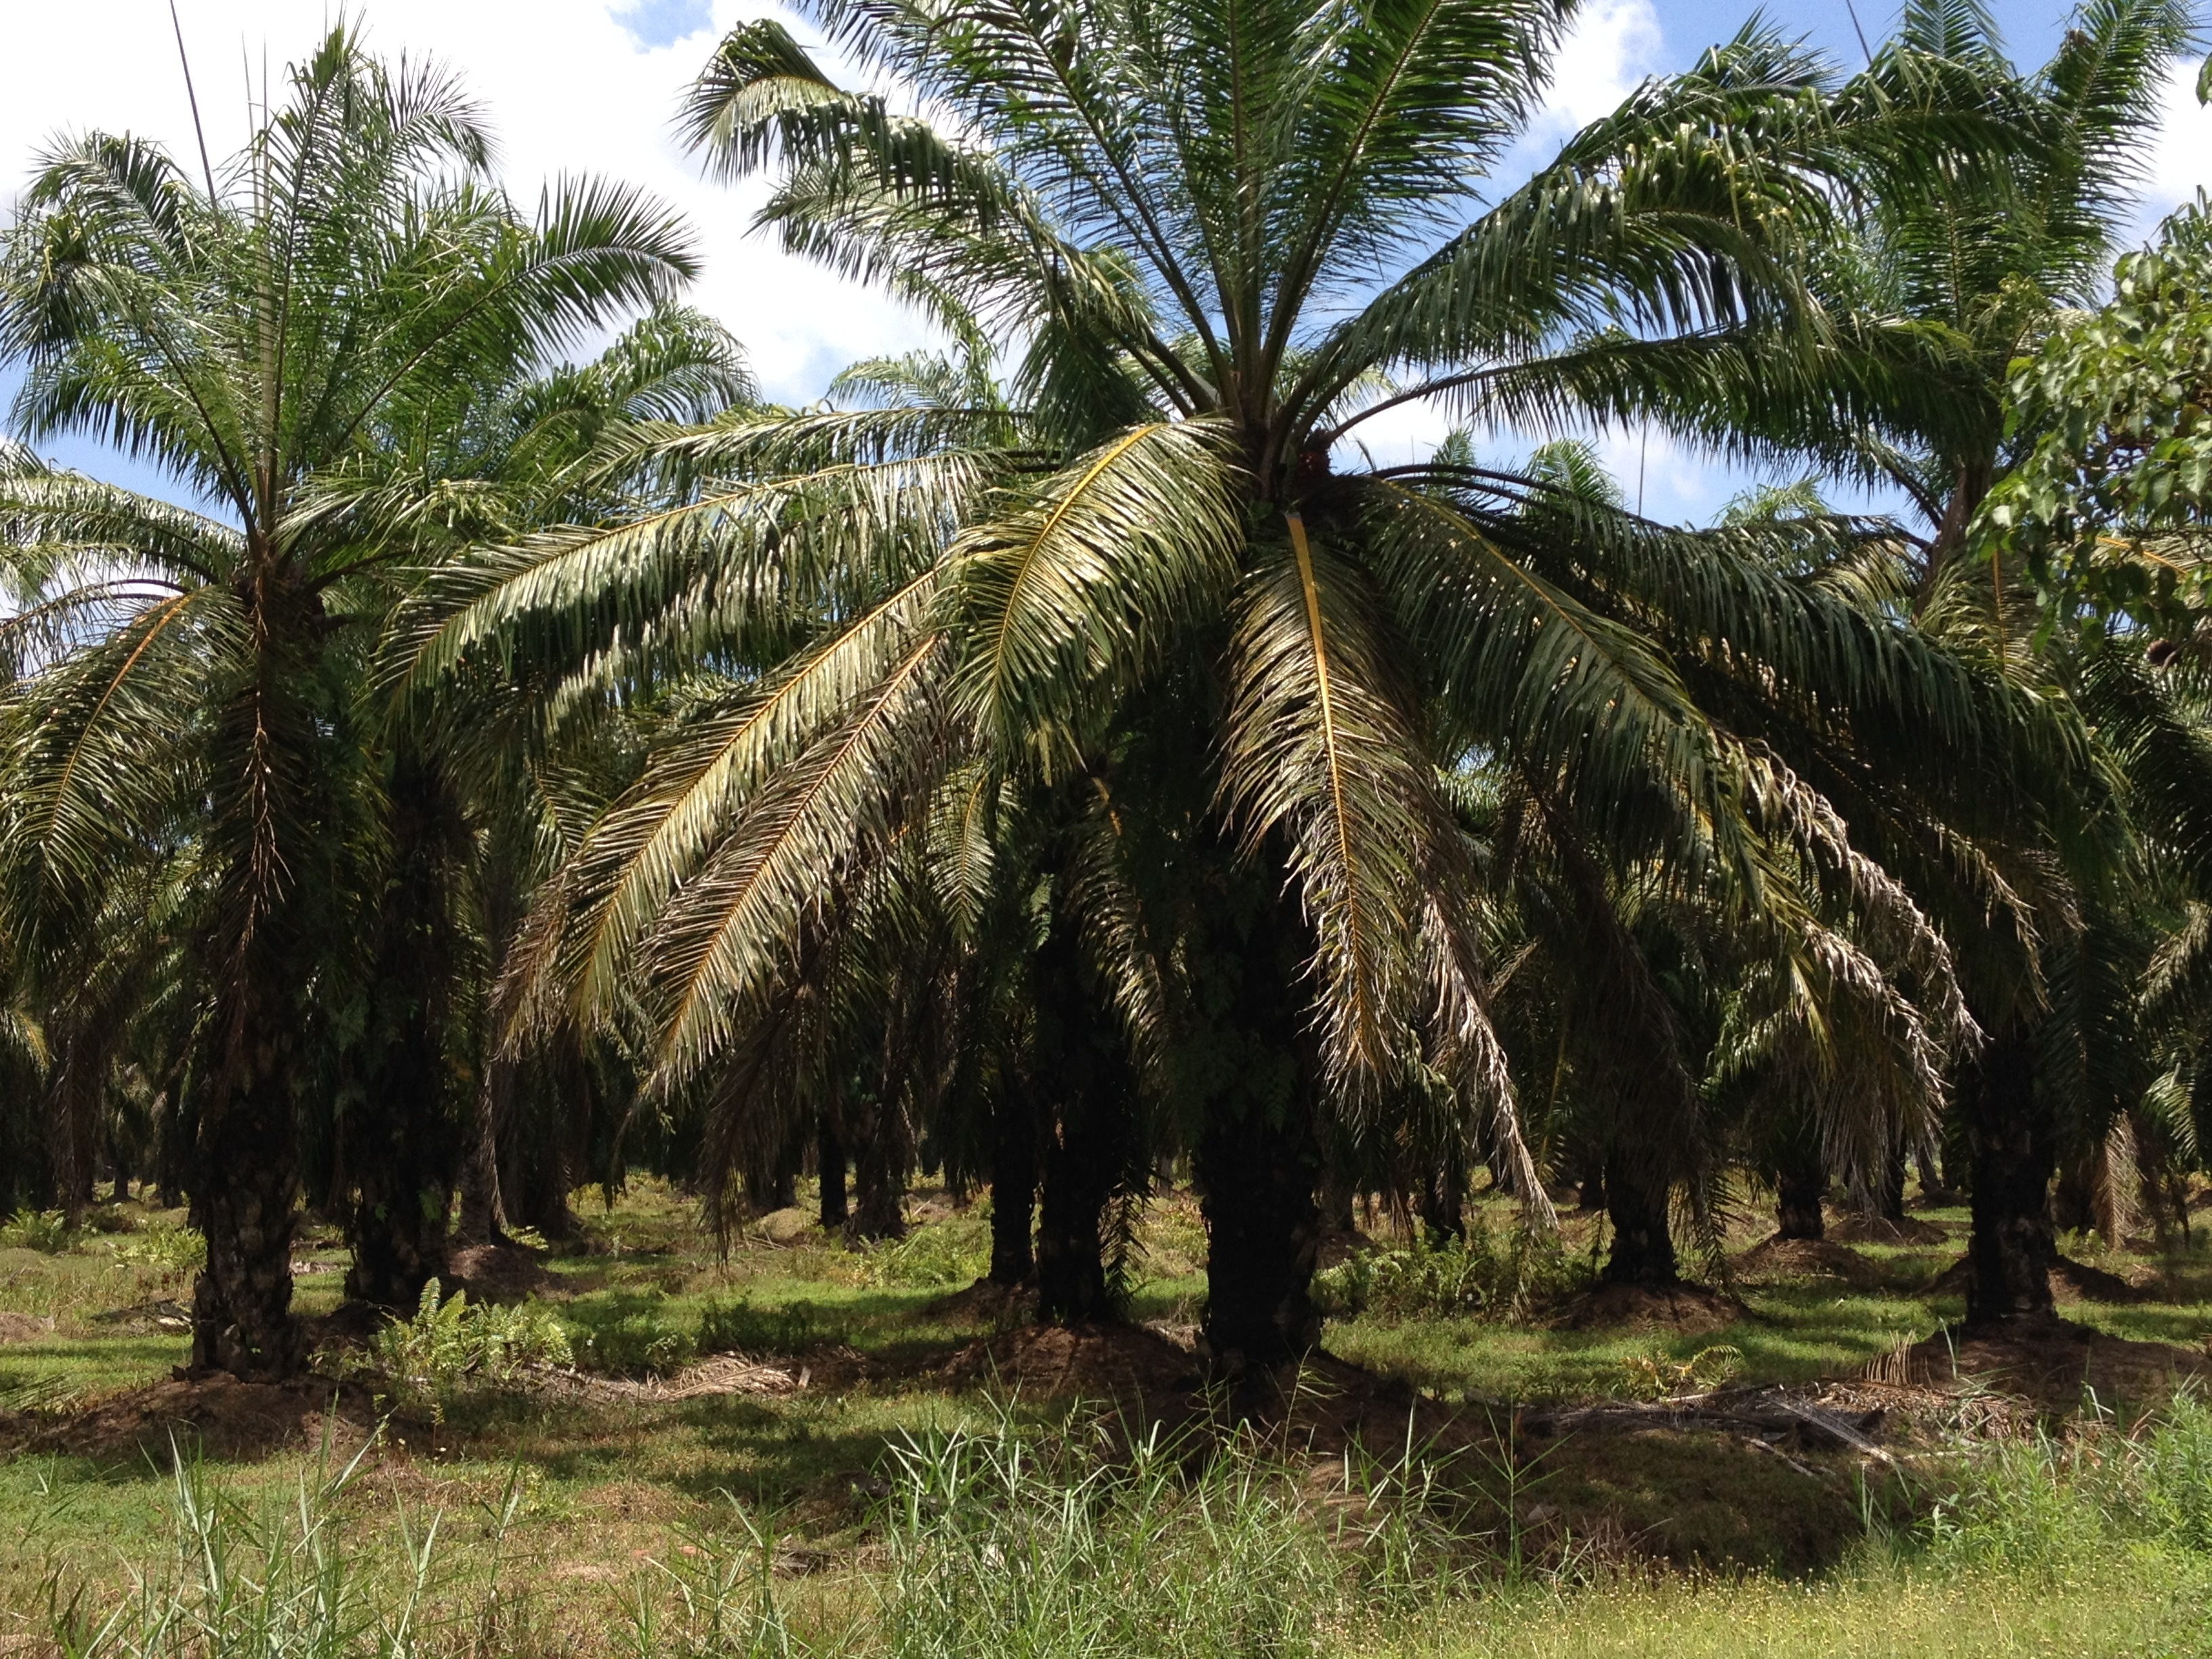 oil palm in malaysia Palm oil: productive and much of this expansion has occured in malaysia and many countries depend on palm oil imports oil palm plantations are expanding more.